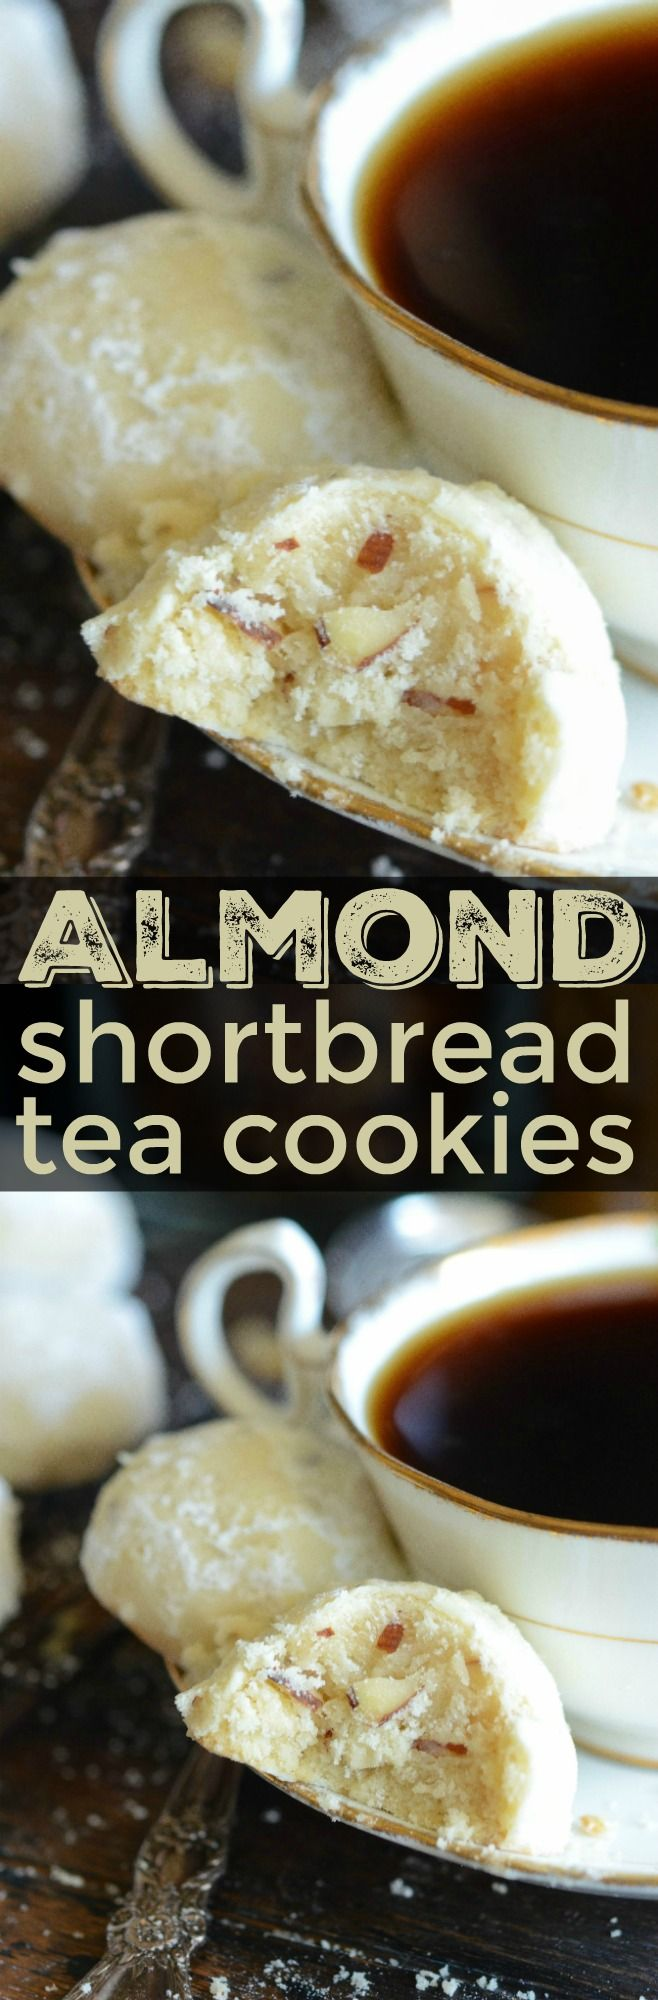 Almond Shortbread Tea Cookies are soft buttery cookies filled with almonds and tossed in powdered sugar to make the perfect sweet accompaniment to a cup of tea!